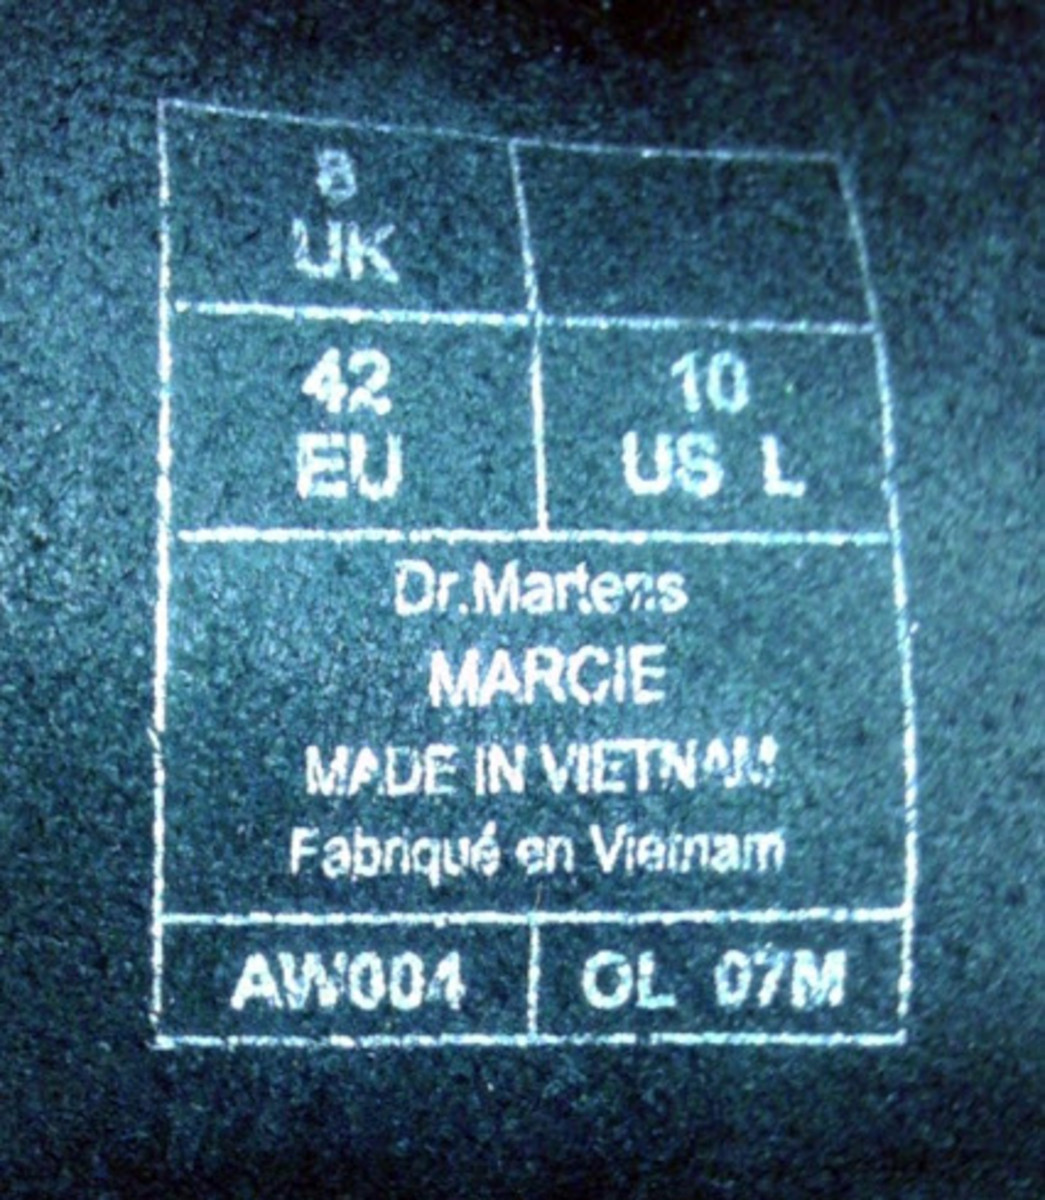 The stamp on the tongue of the boot marks that they were made in Vietnam.